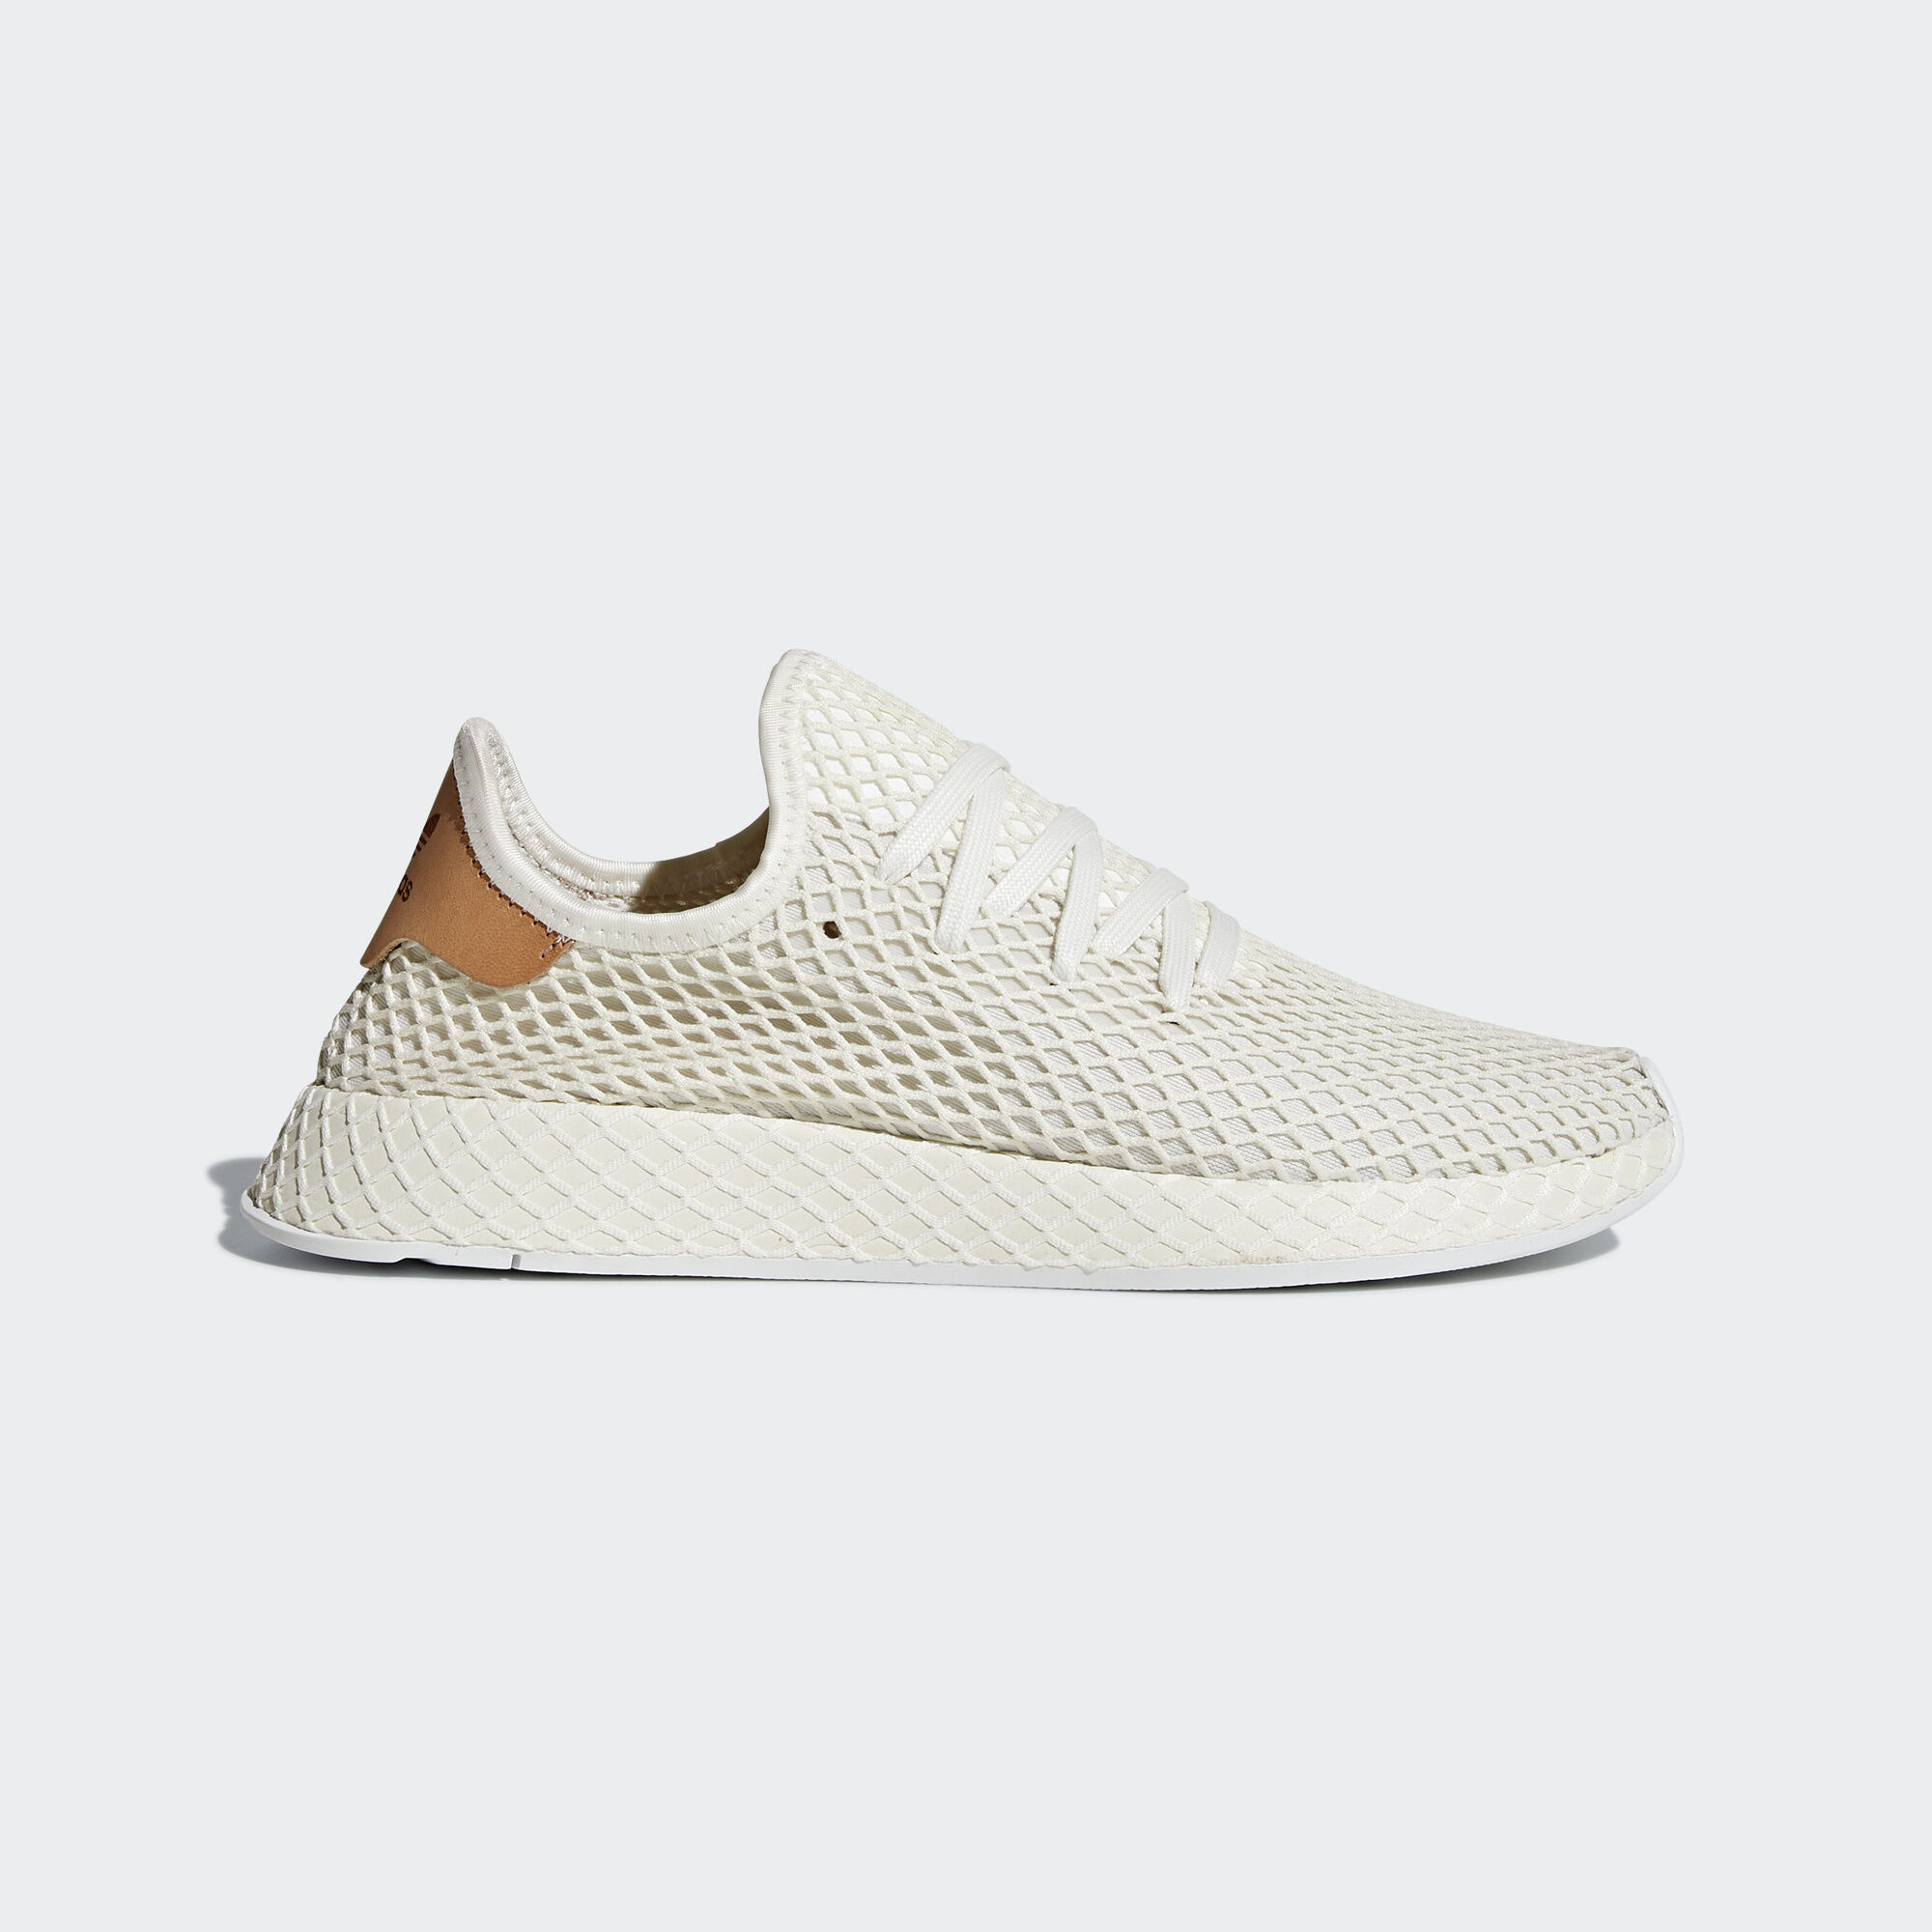 d5c7d8ac9ad adidas - Deerupt Runner Shoes Cloud White   Ash Pearl   Ftwr White B41759